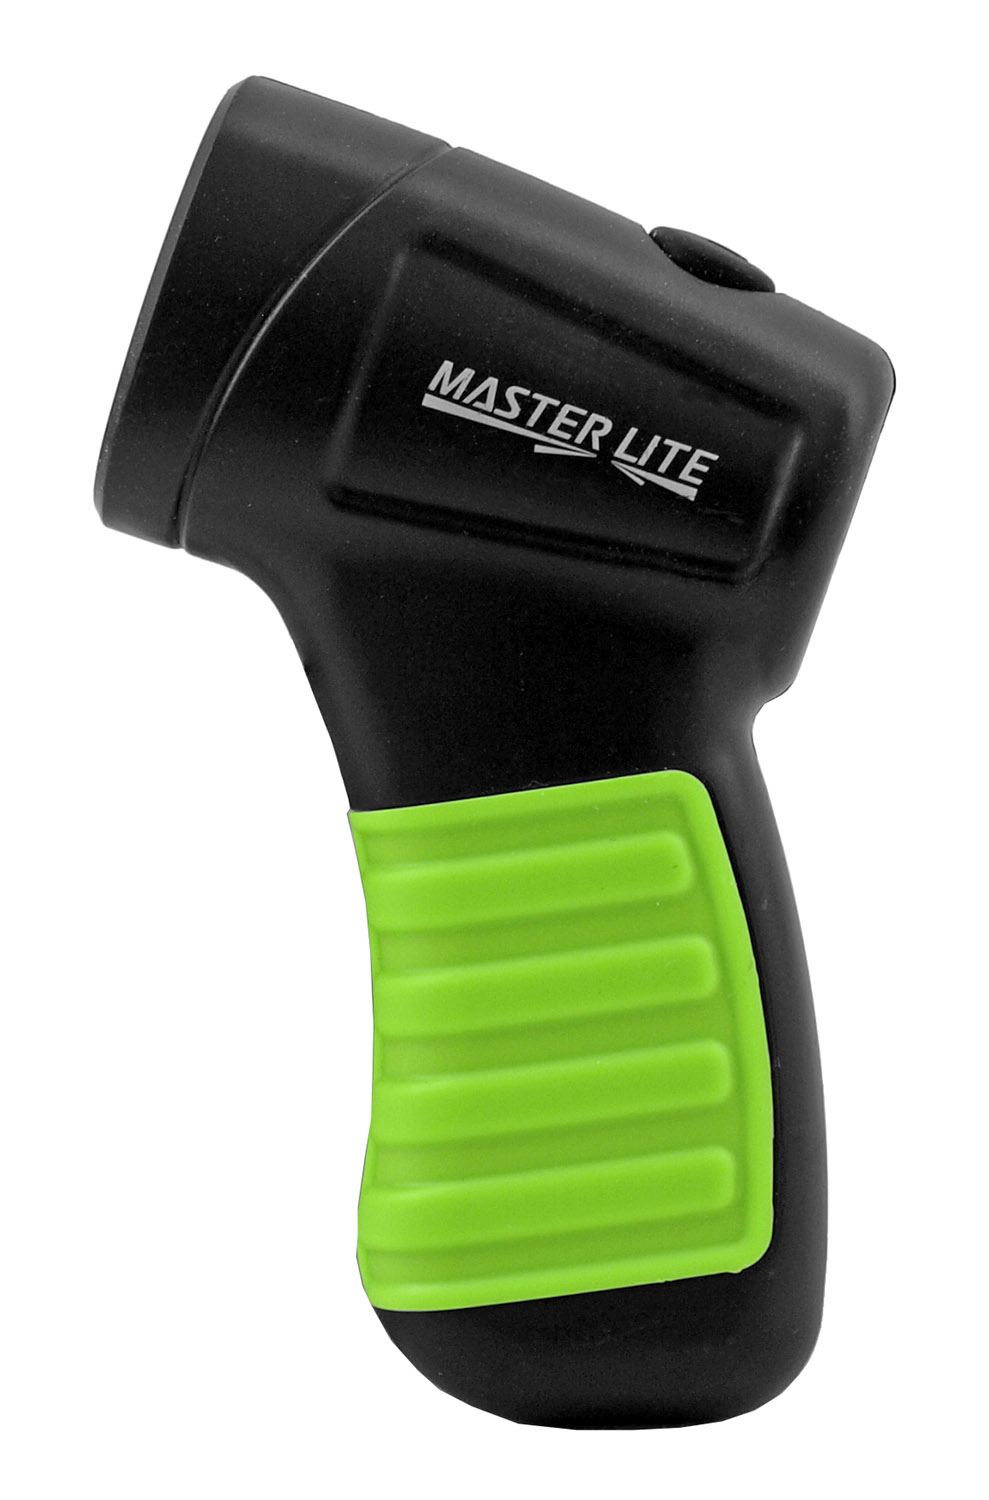 Climate and Eco-Friendly Battery Operated Master Lite Pistol Grip Push Button Flashlight - Assorted Colors